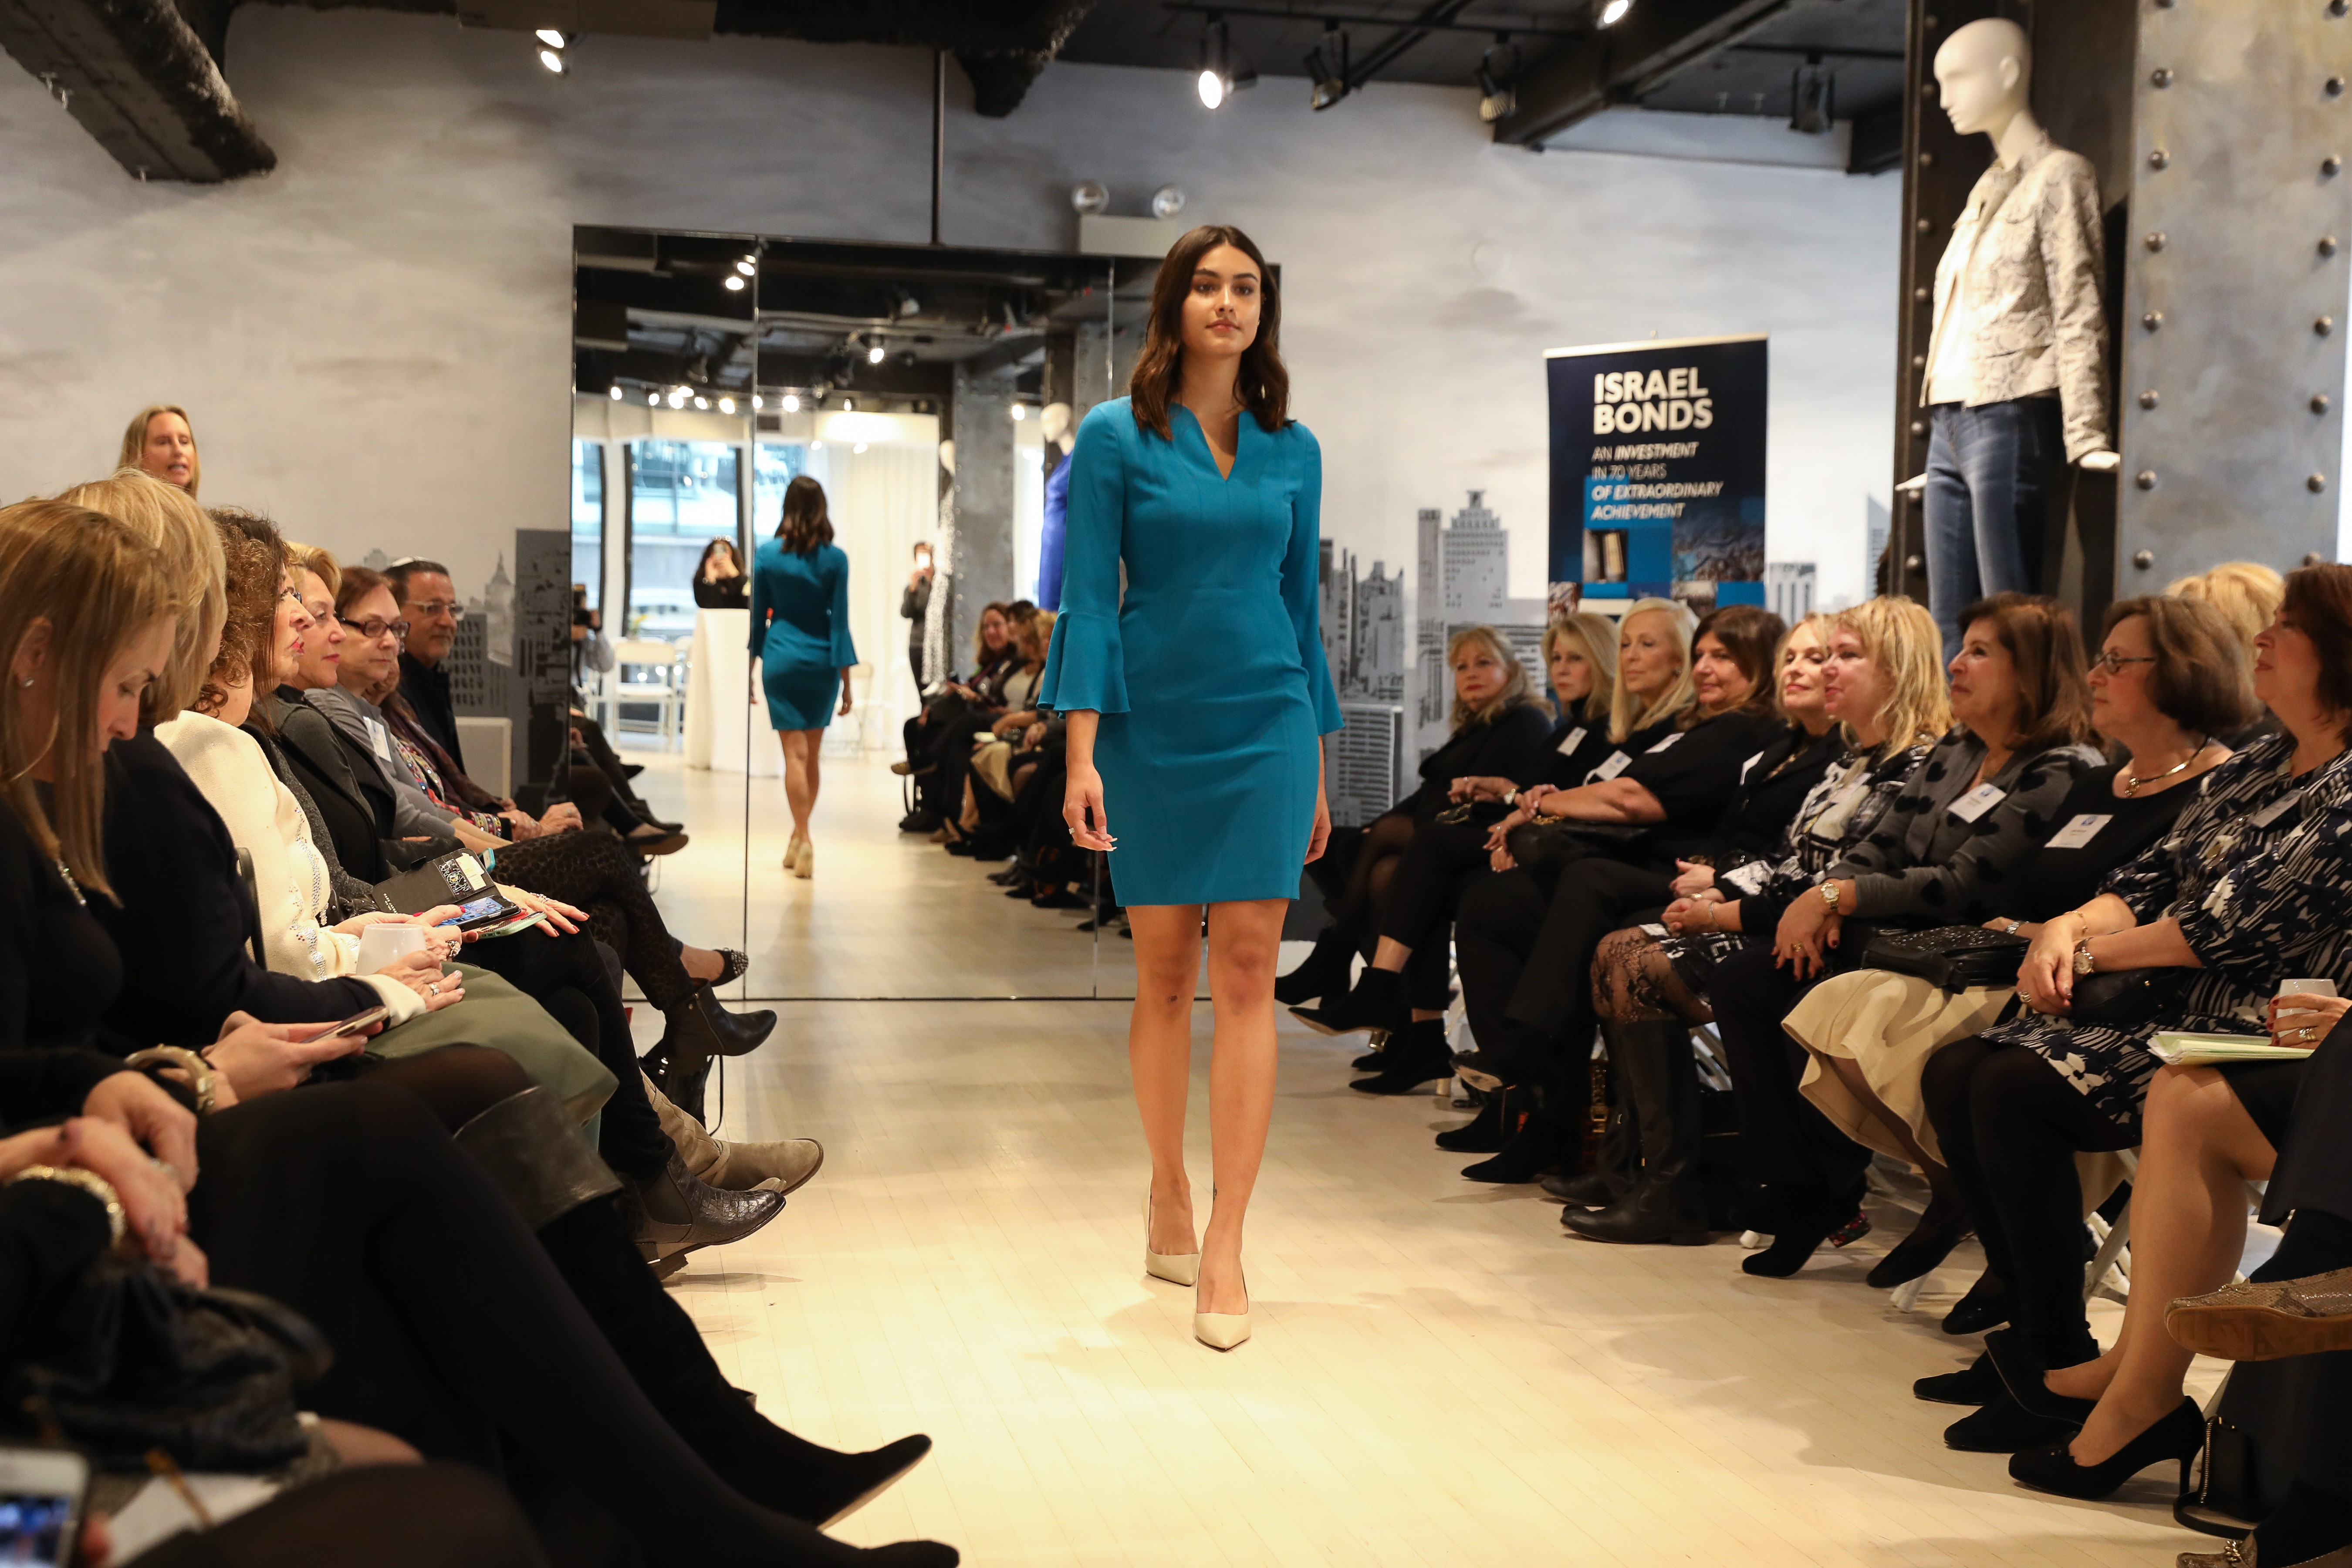 Israel Bonds Taps Into Women S Energy And Style Atlanta Jewish Times